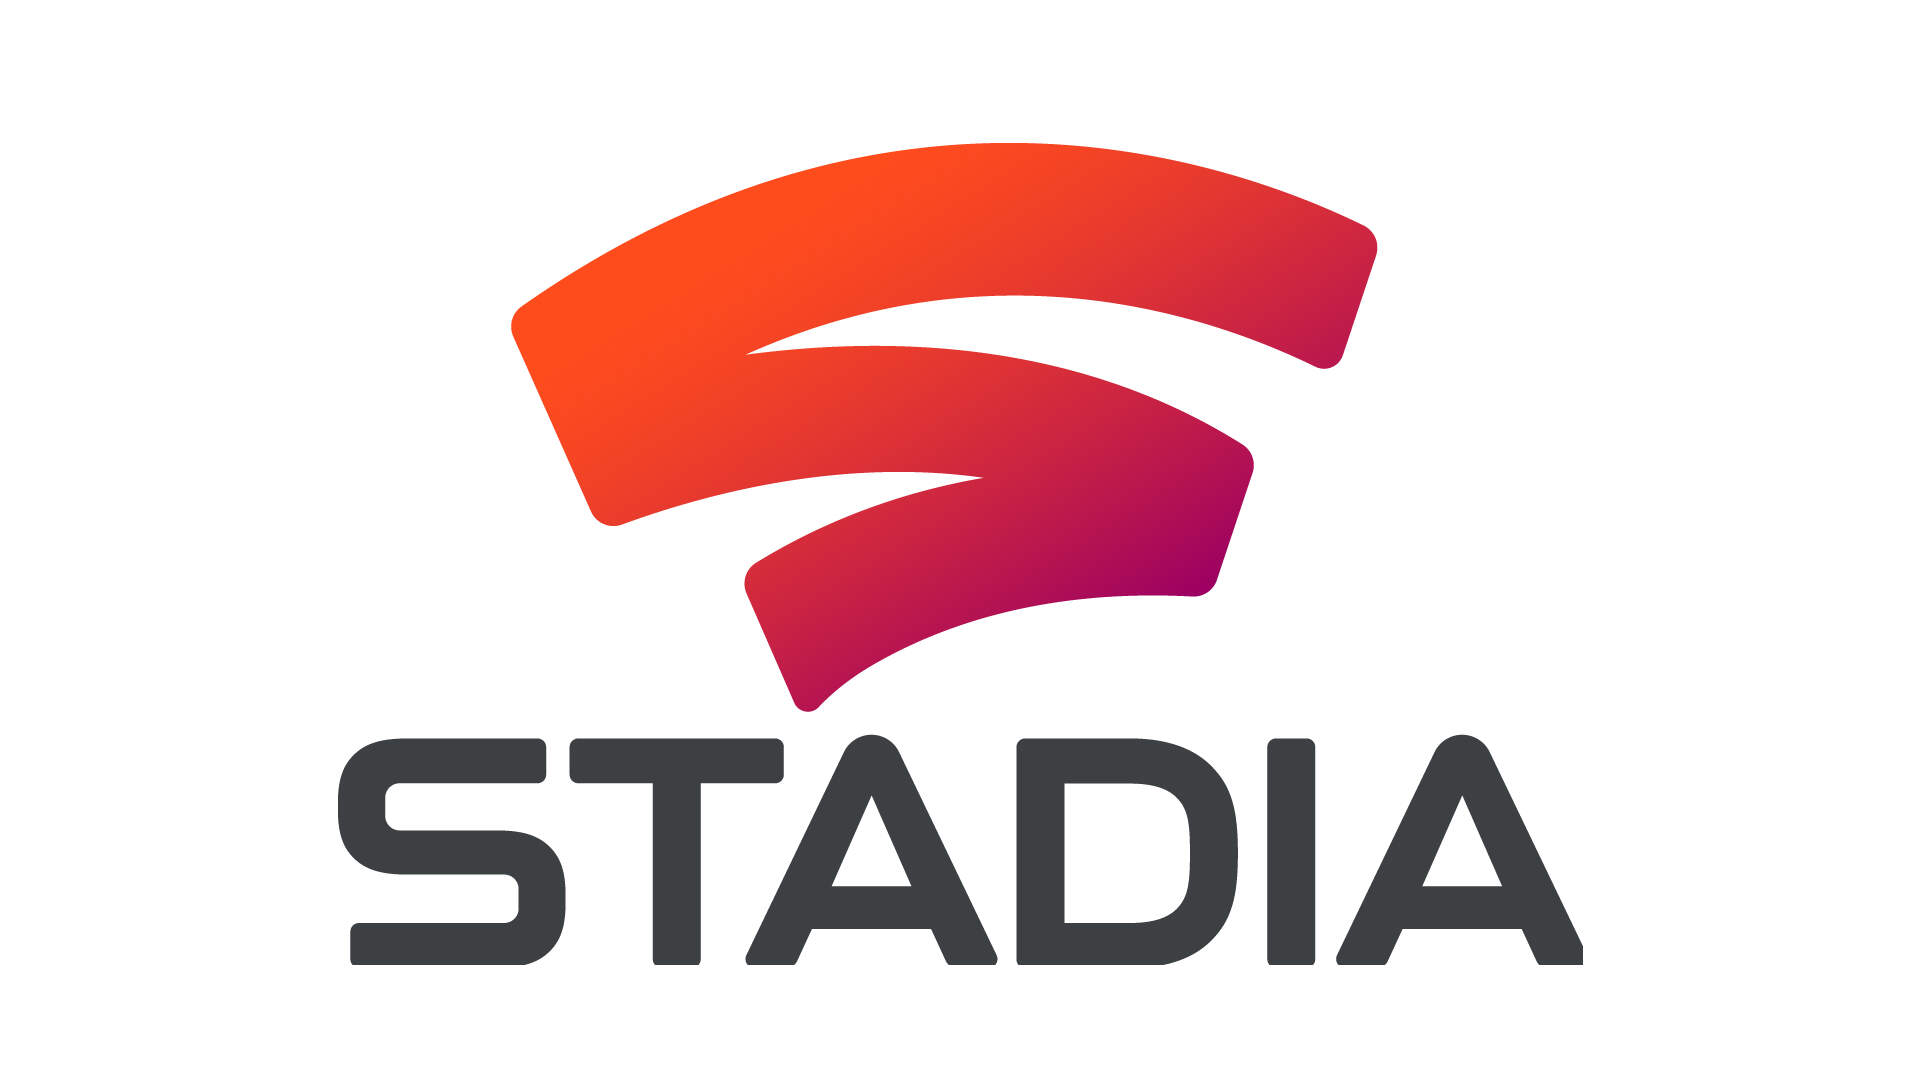 Google Stadia Tests Show Good Controller Response, But Some Image Quality Issues